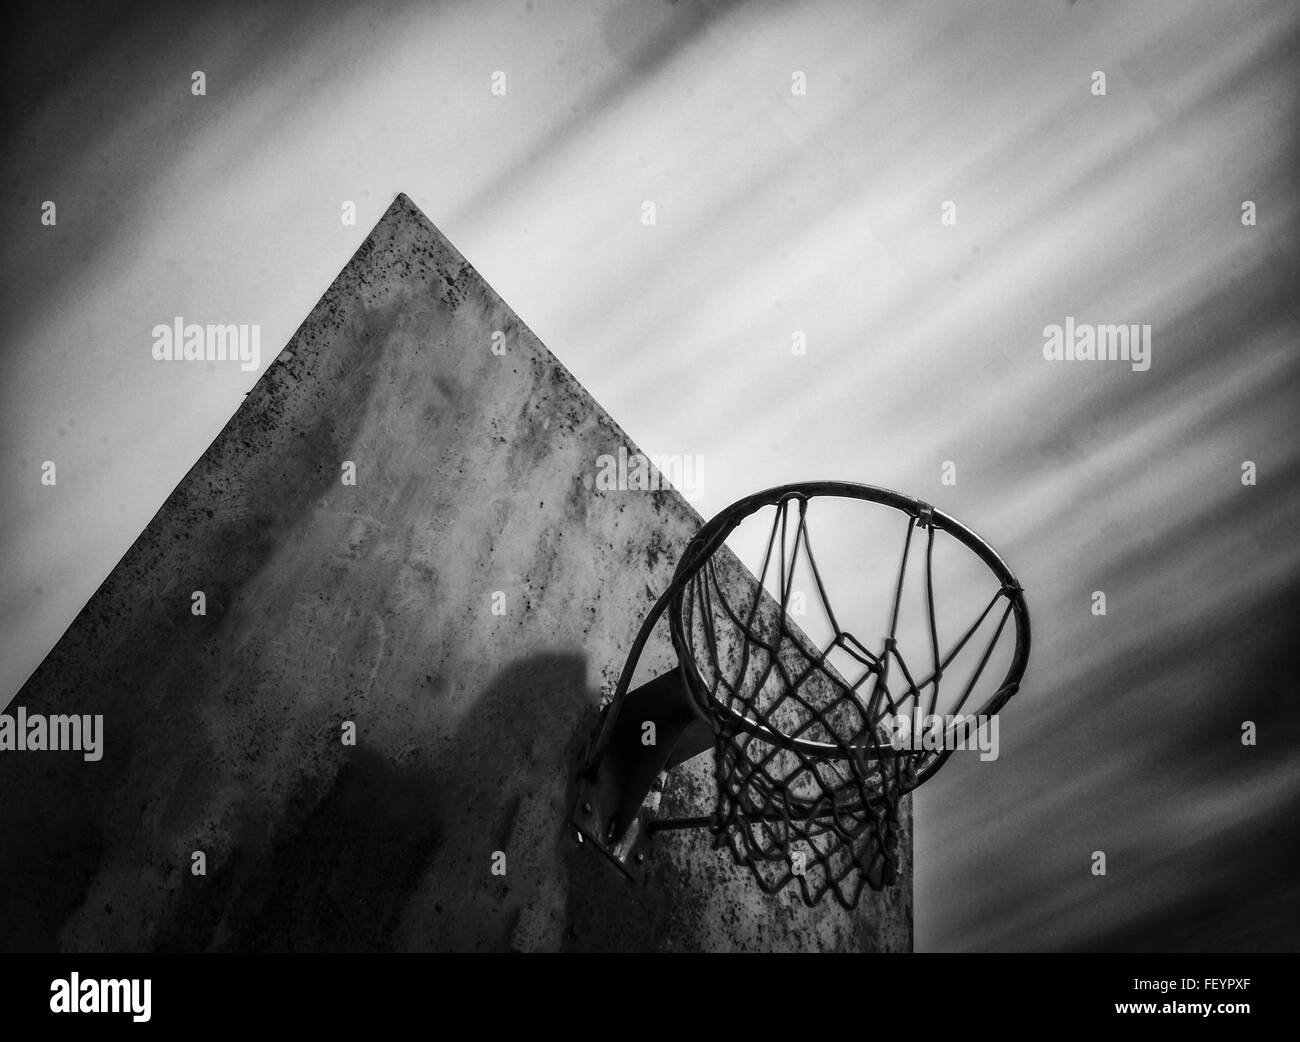 Long exposure of old abandoned basketball in black and white in a cloudy day stock